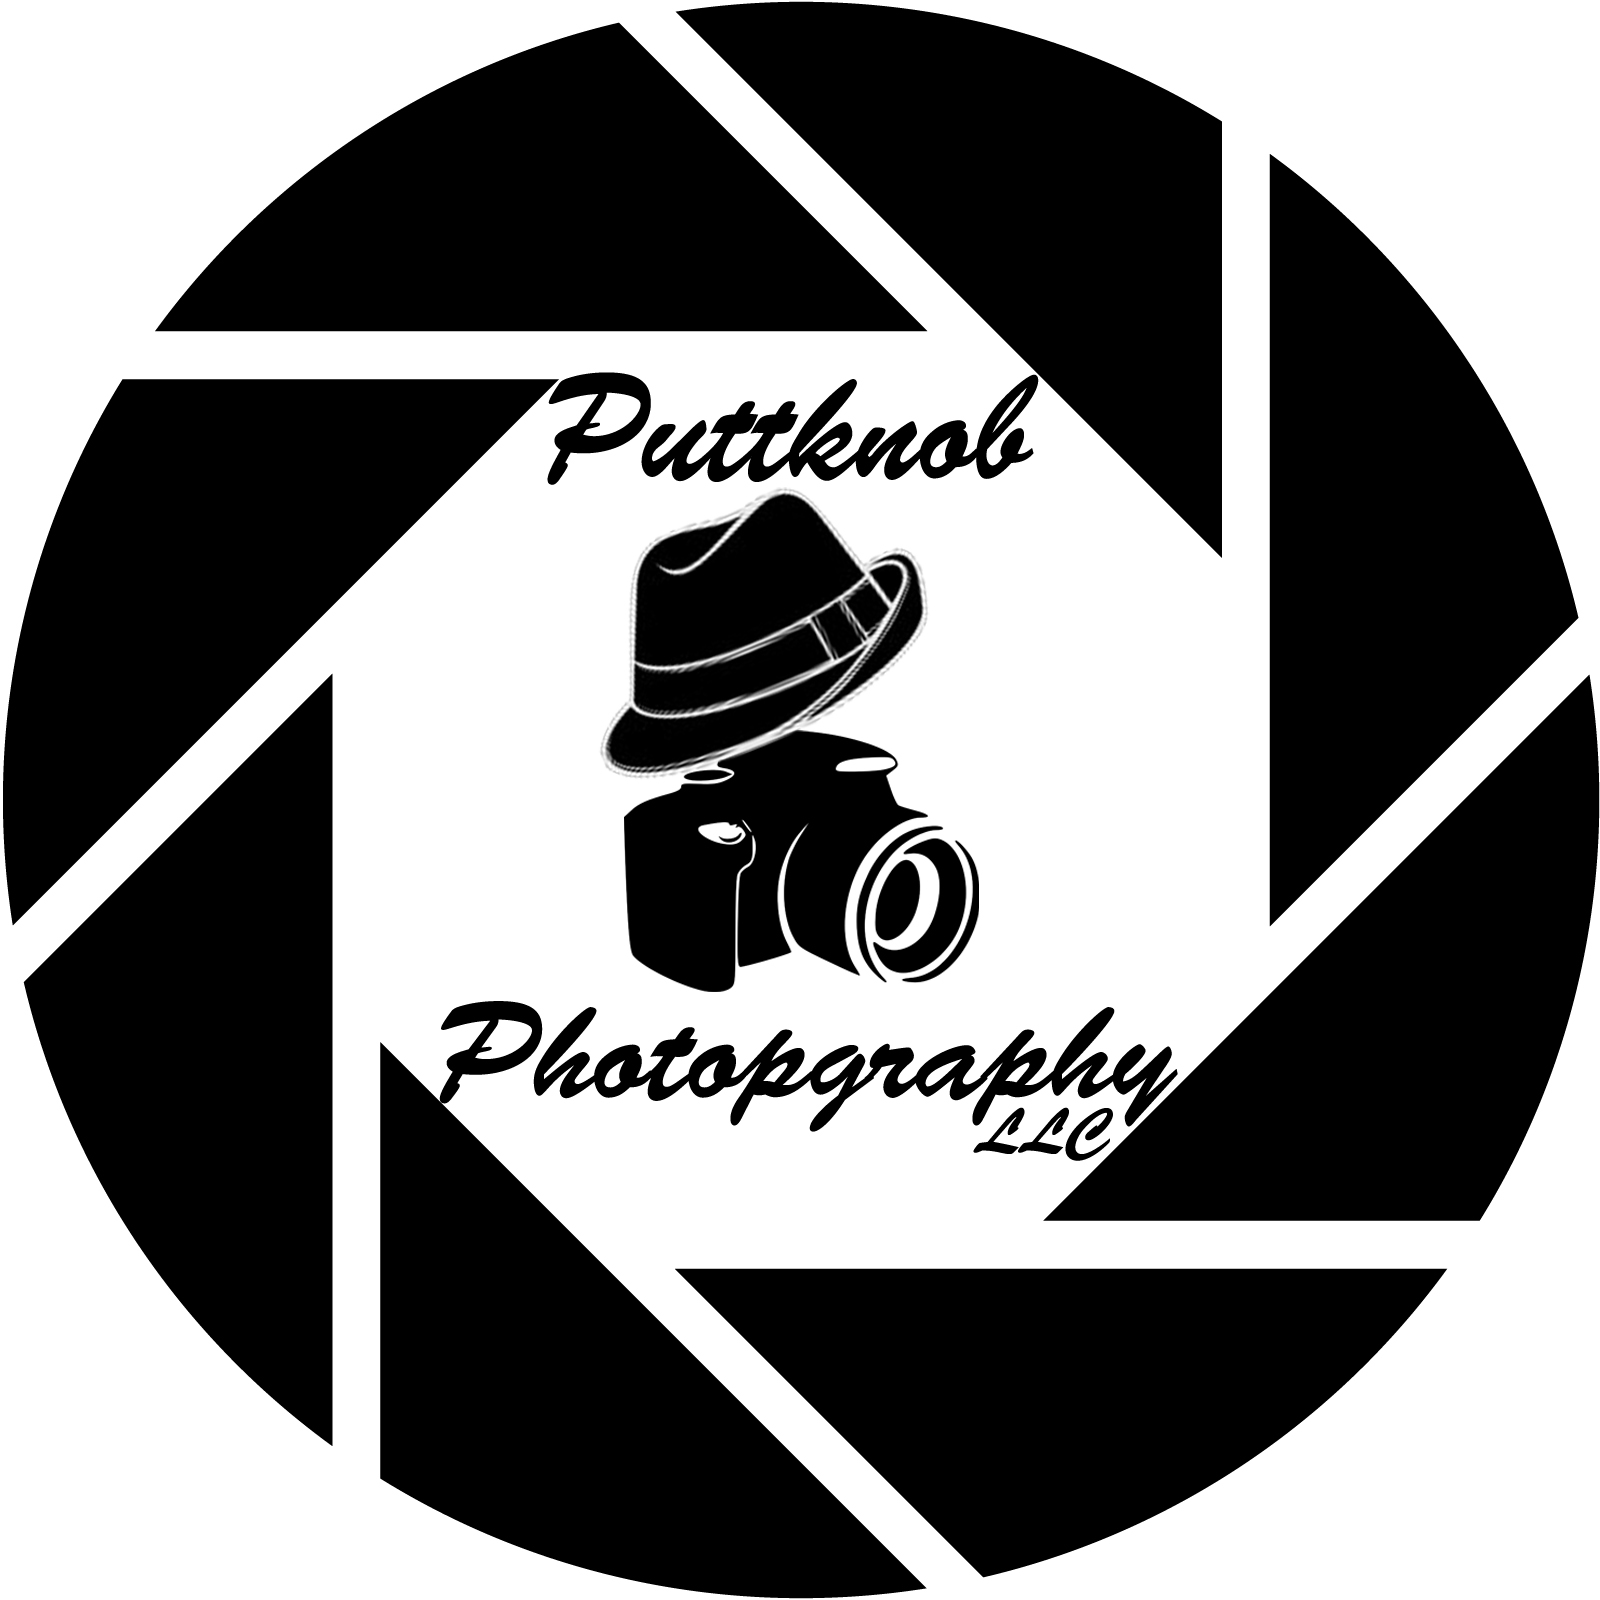 Puttknob Photography, LLC